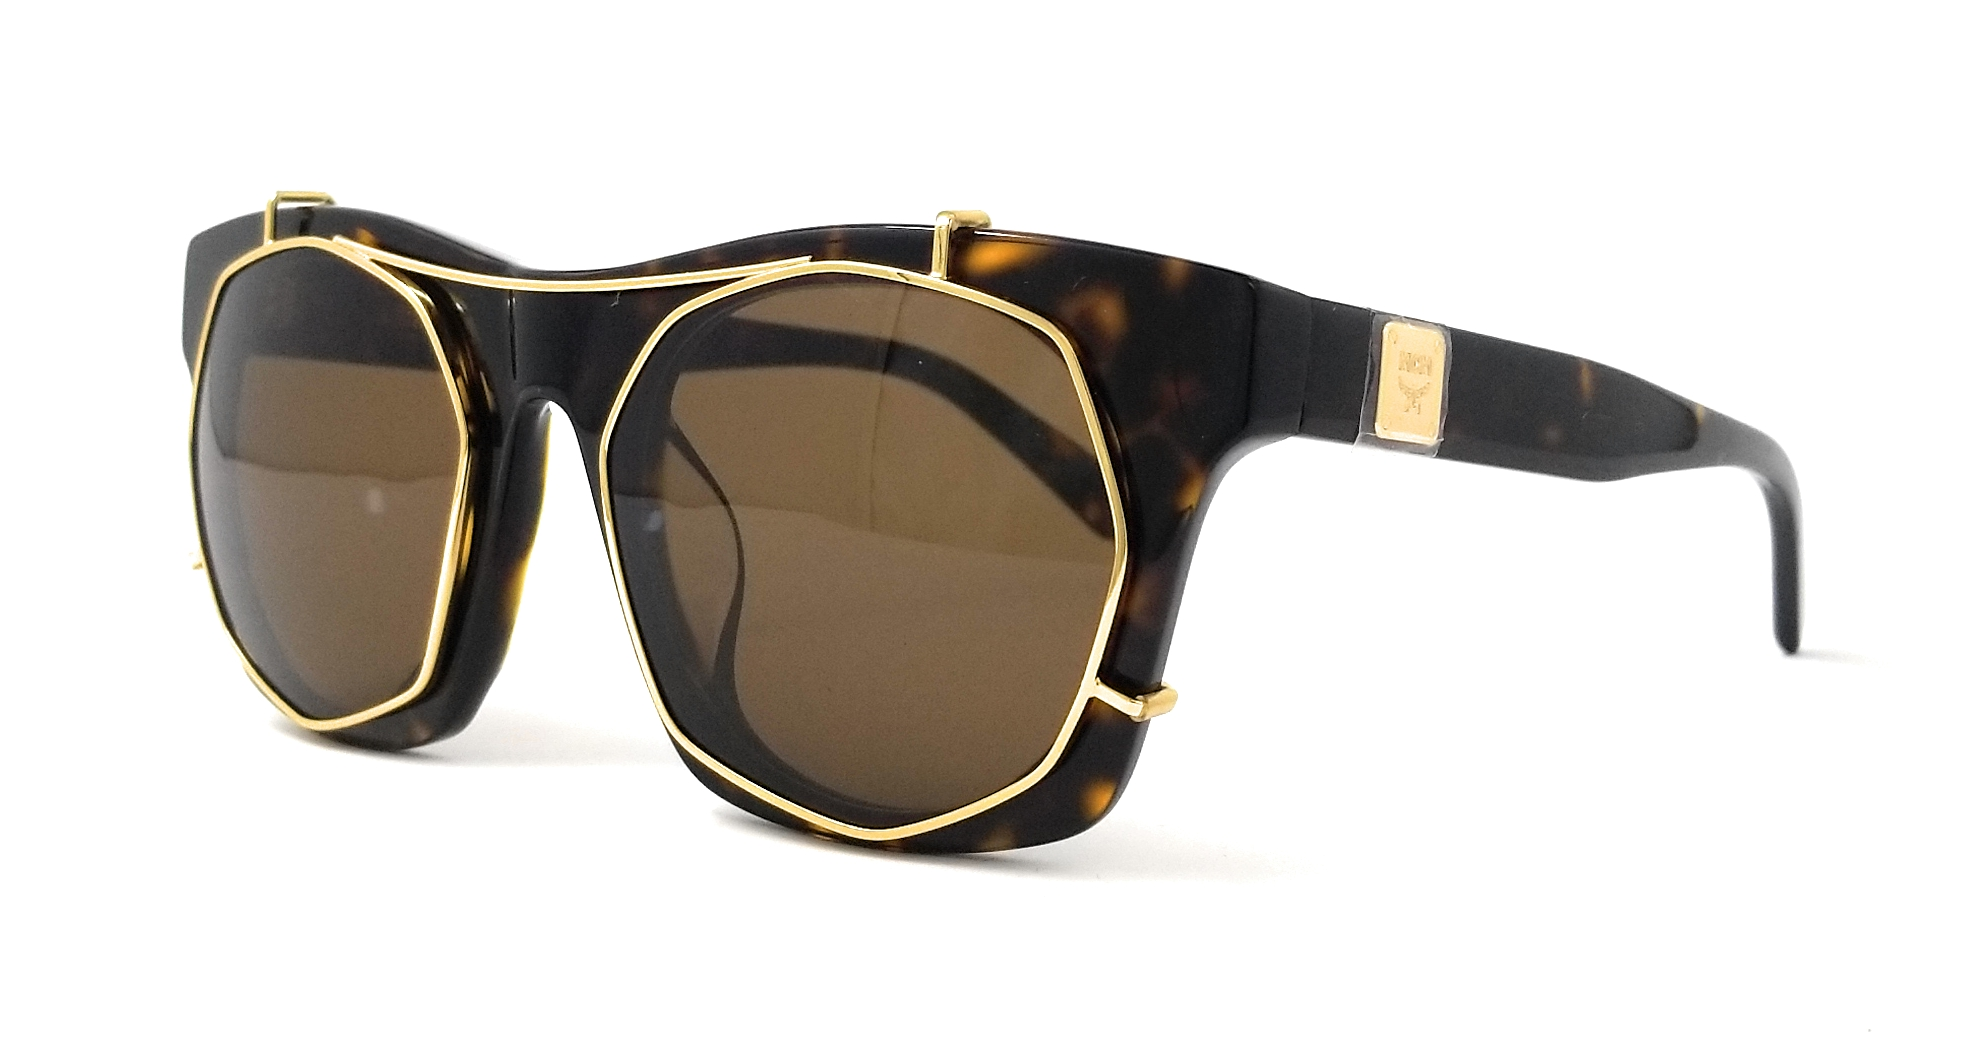 341c8d3460 Details about MCM Sunglasses MCM605SA 213 Havana-Shiny Gold Rectangular  Women 50x23x140